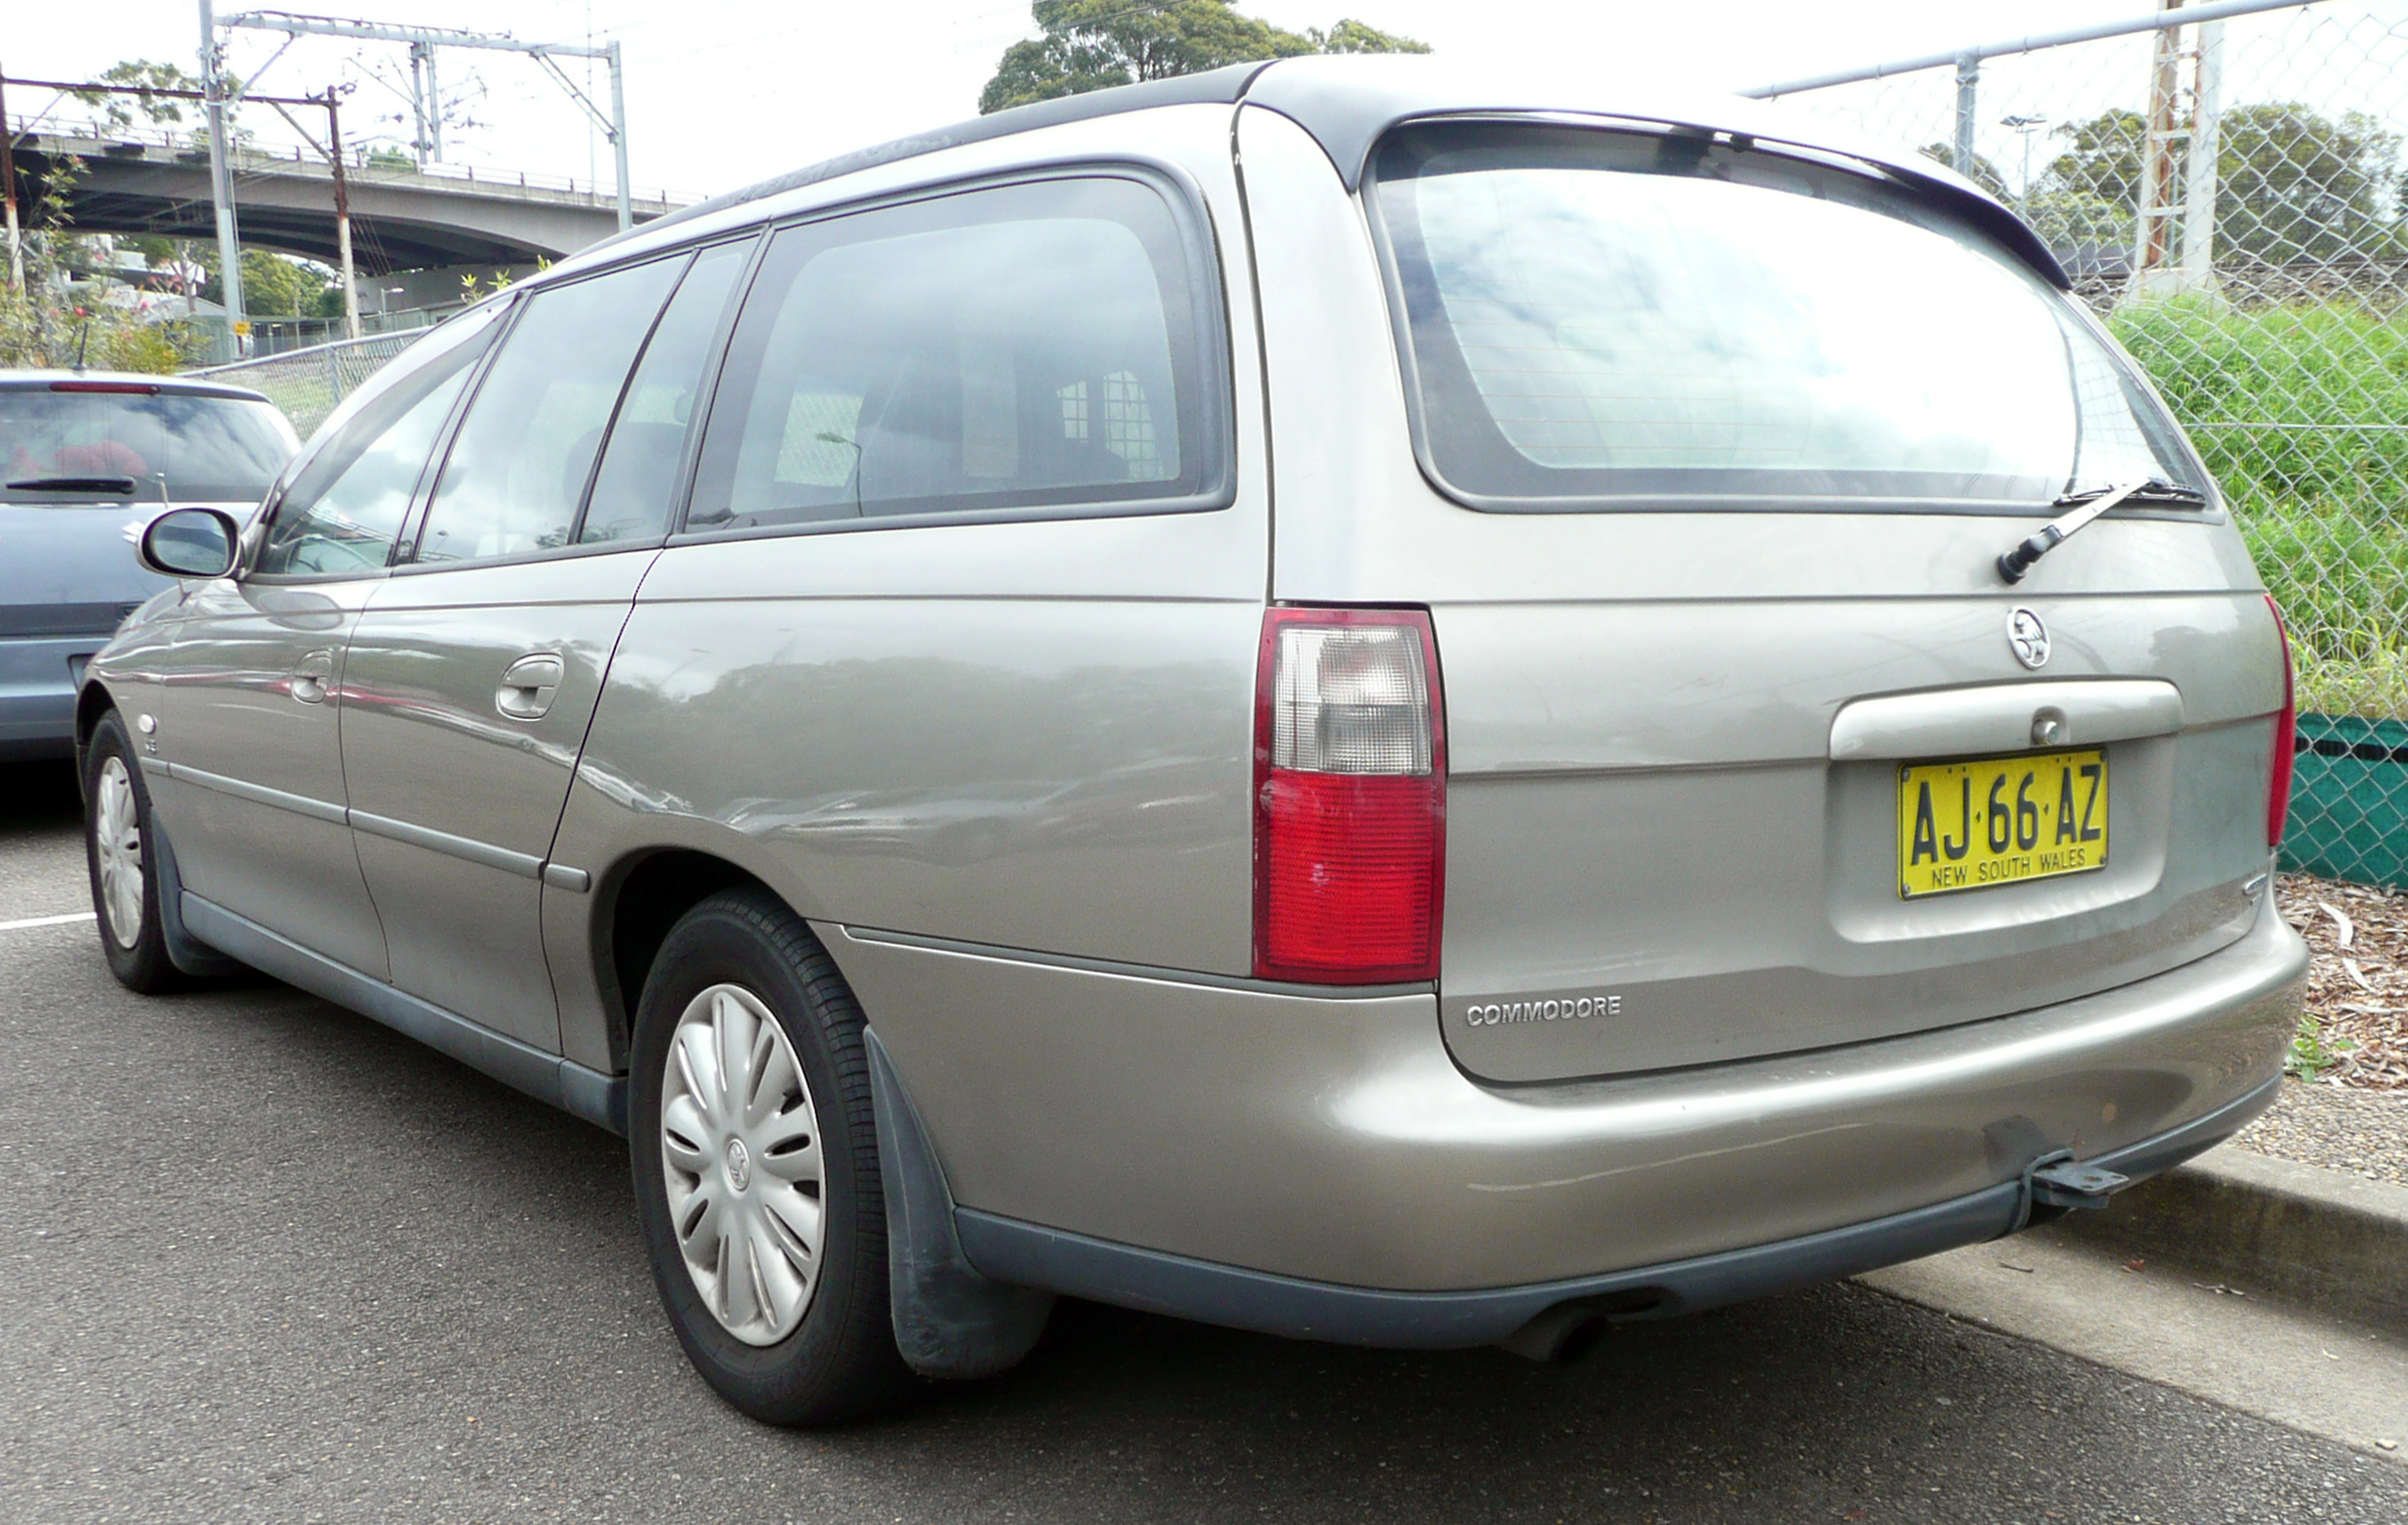 holden commodore wagon (vt) 2007 images #7